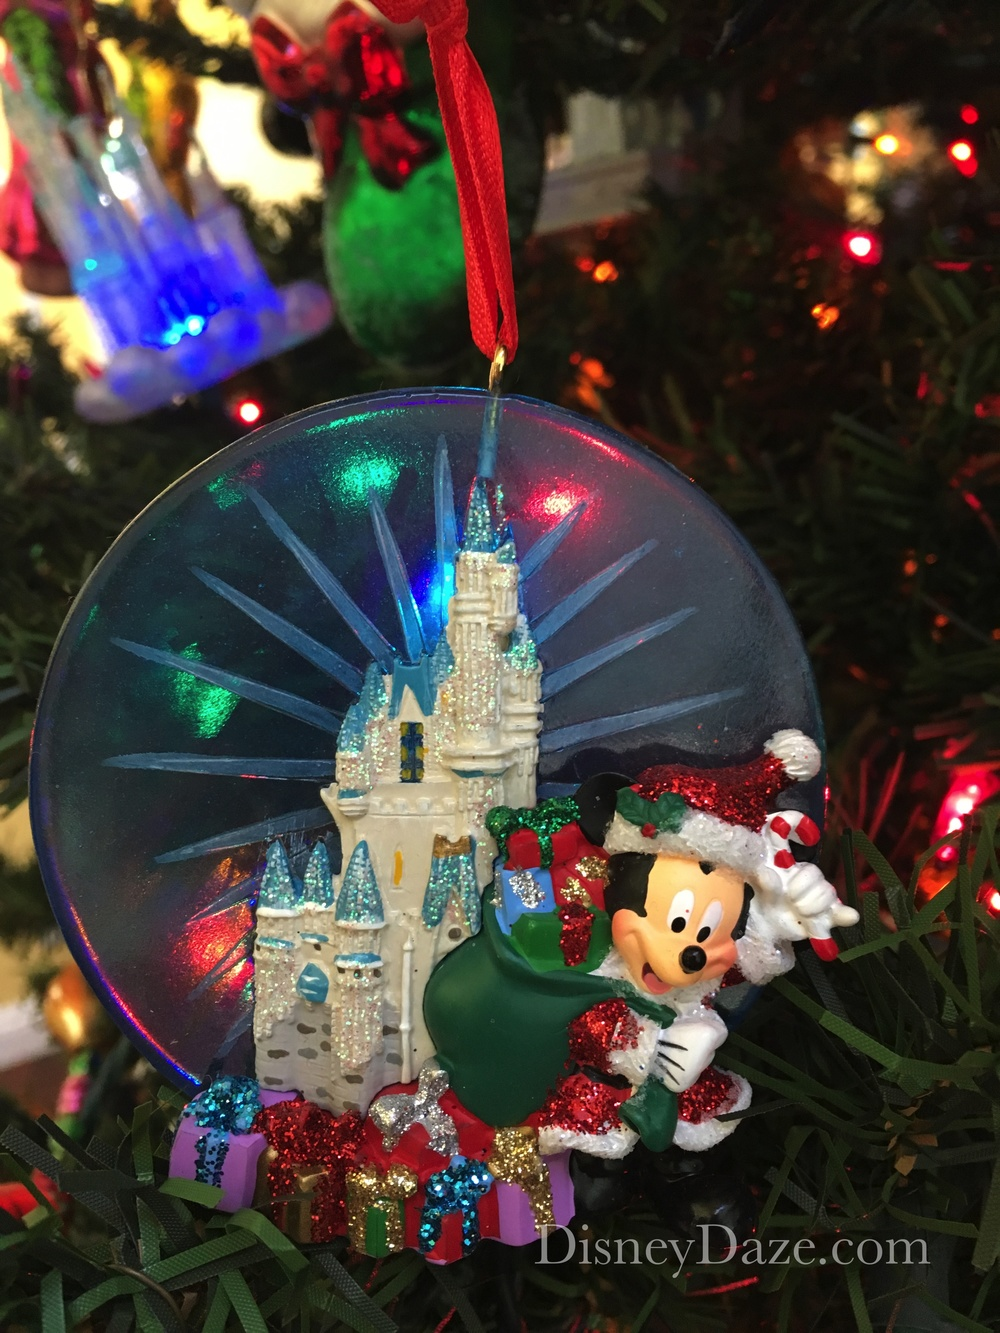 Plastic and resin Disney Parks ornament.